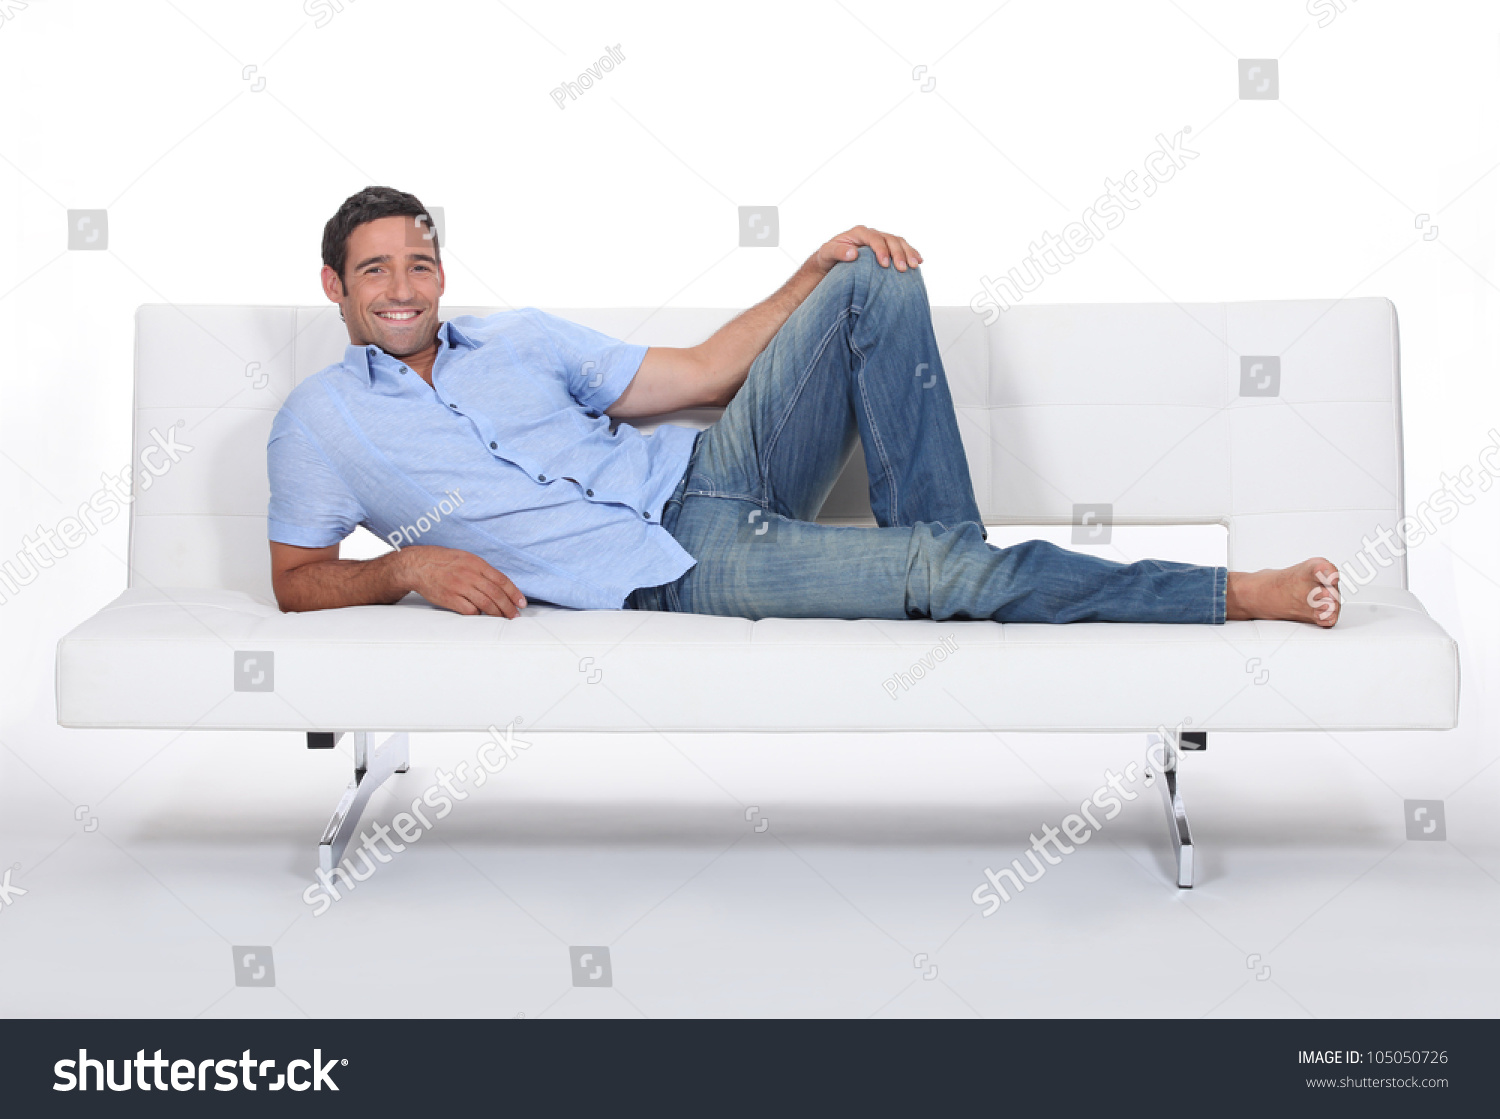 Royalty-free Barefoot man lying on a couch #105050726 Stock Photo ...